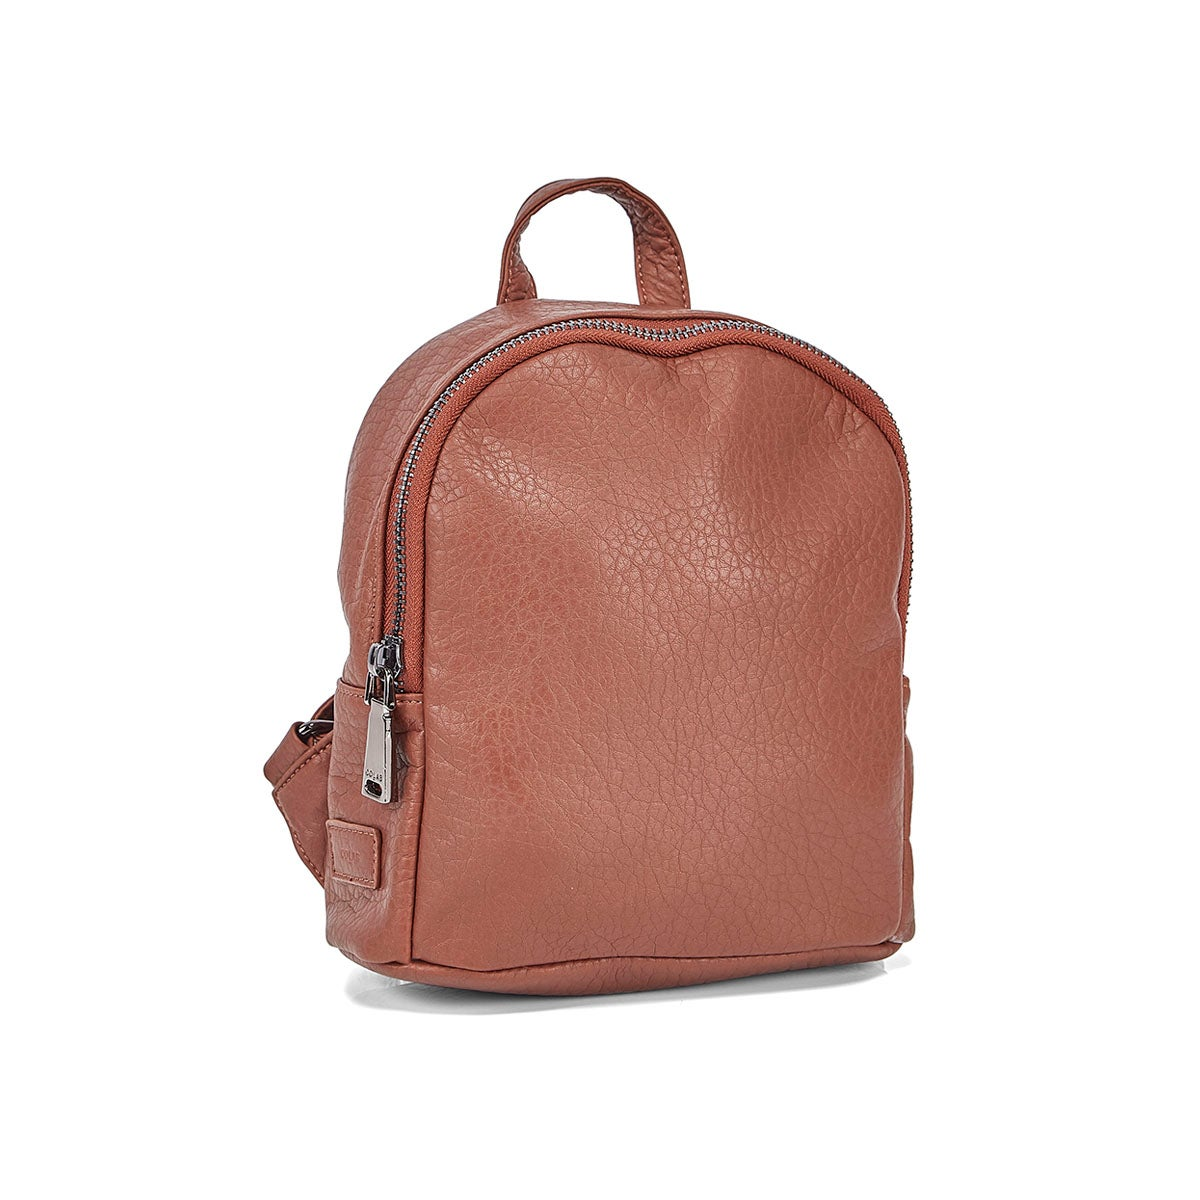 Lds Loft Micro cocoa backpack